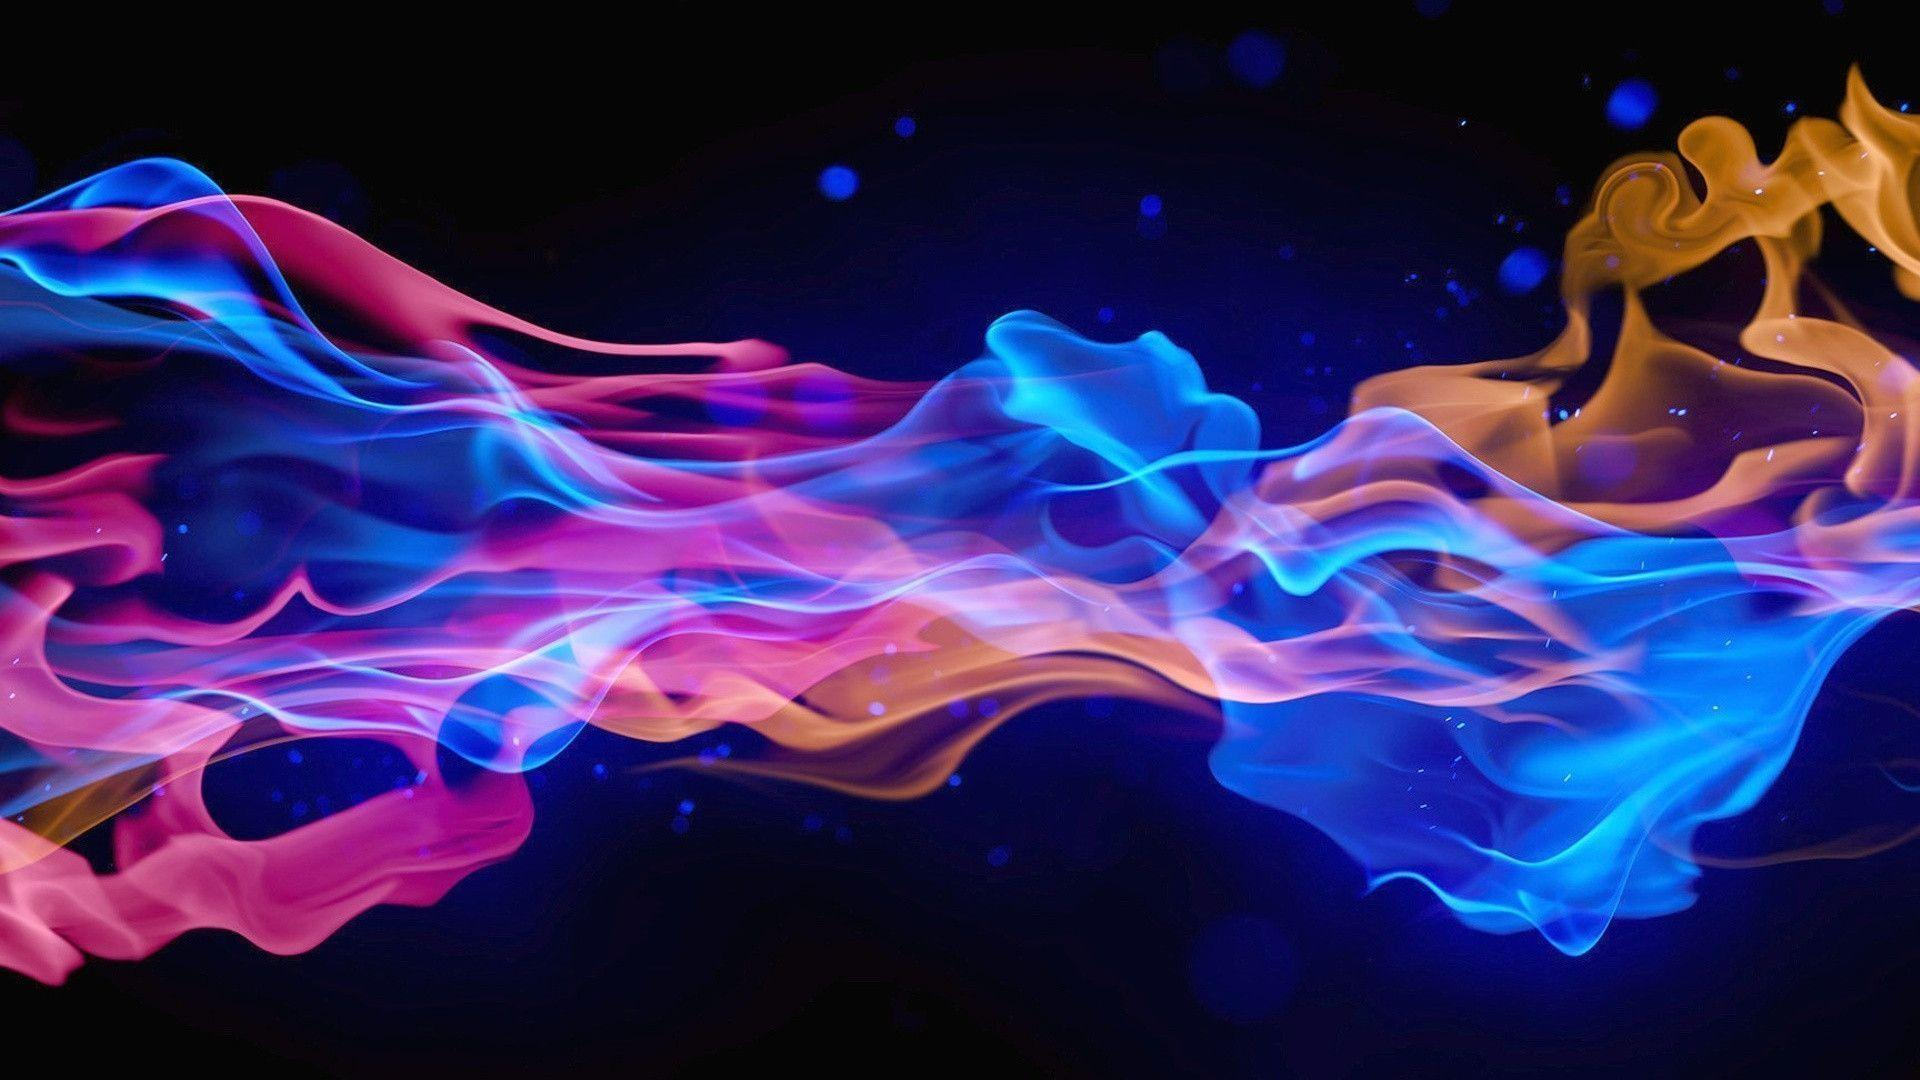 Smoke Background Hd >> Purple Flames Backgrounds - Wallpaper Cave